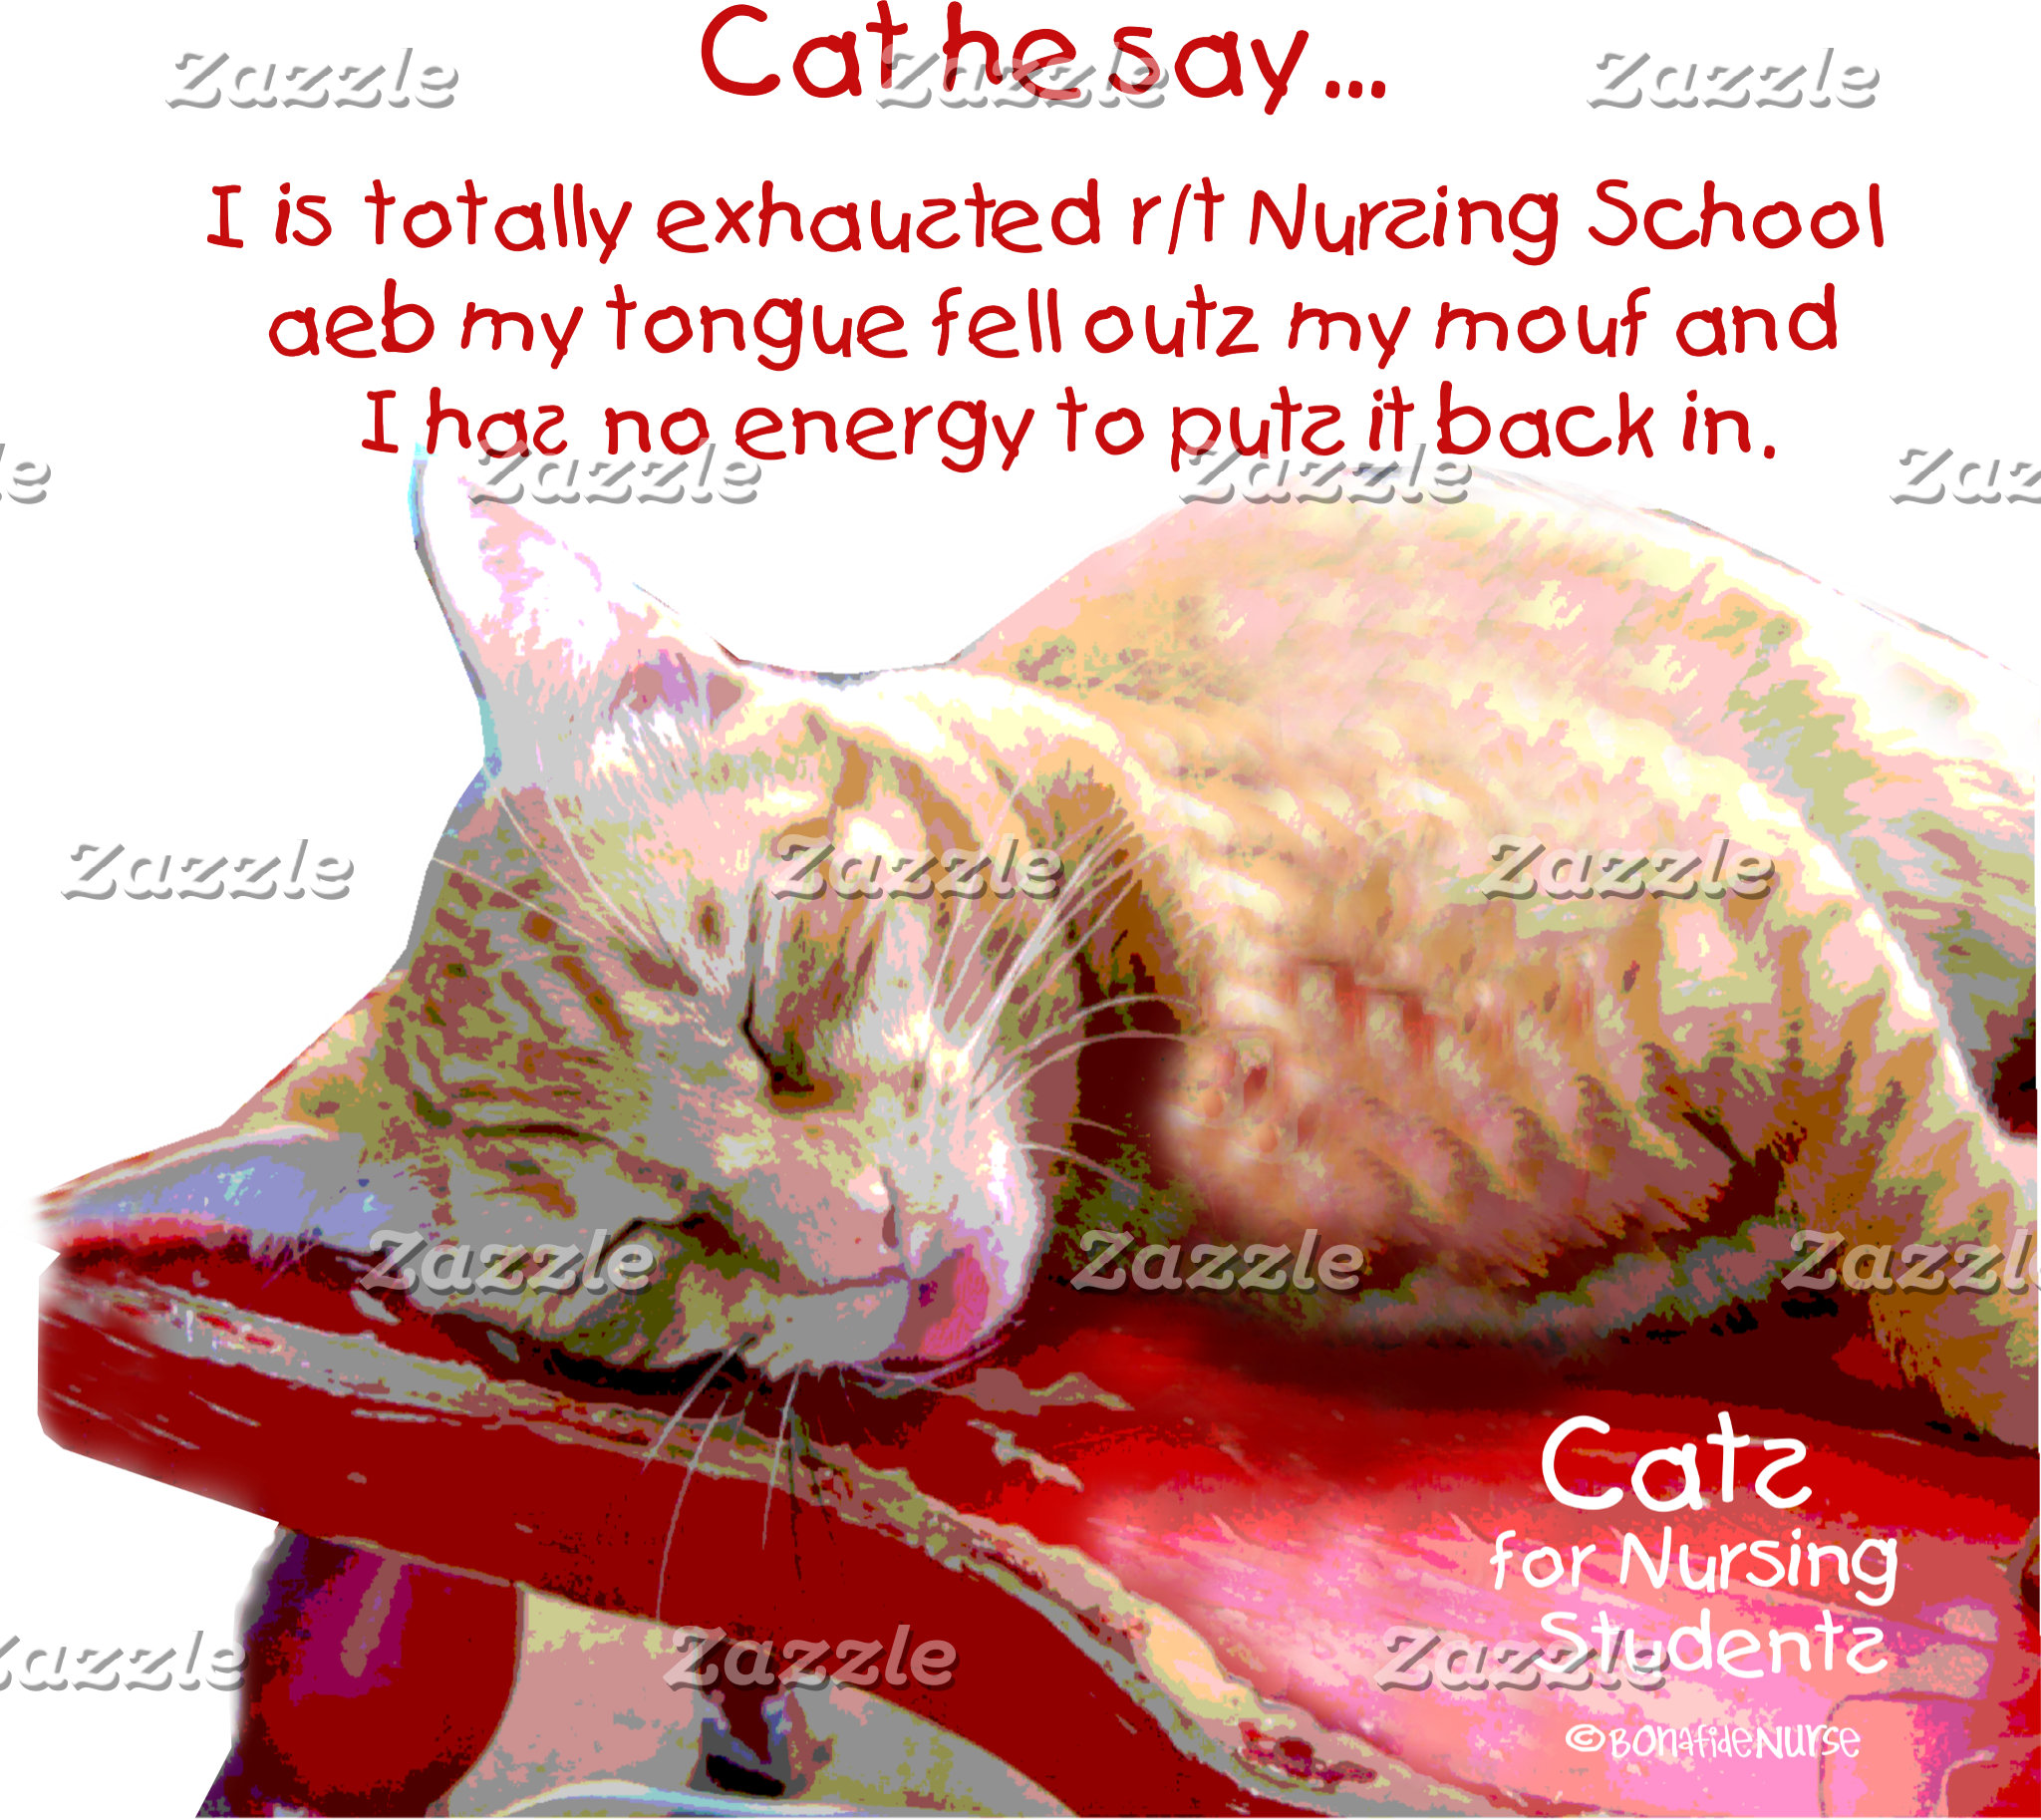 Cats for Nursing Students - Exhaustion